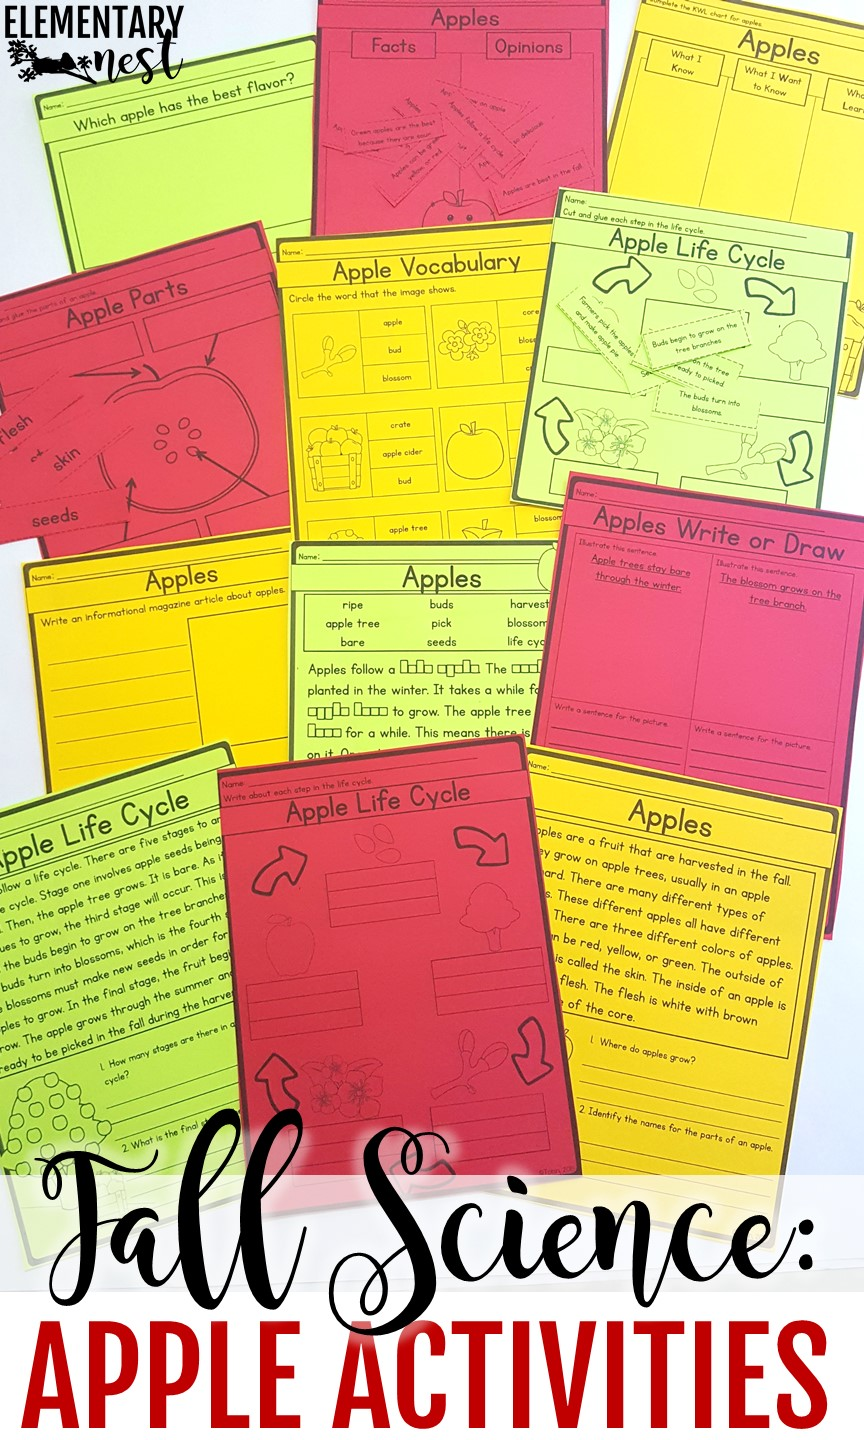 Apple life cycle reading and science unit.